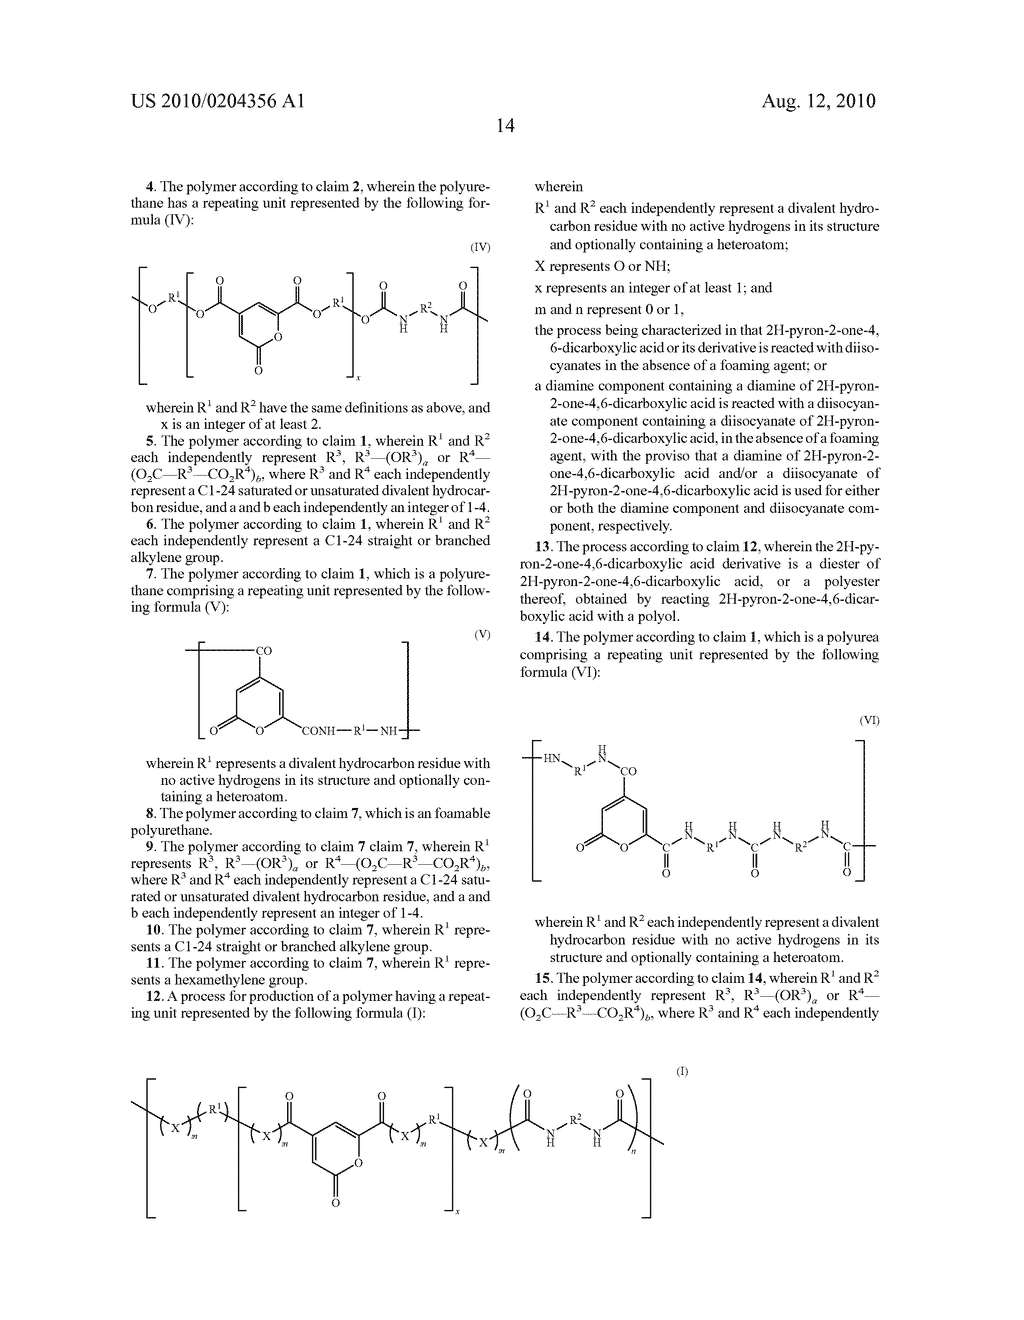 POLYURETHANES, POLYUREAS, AND PROCESS FOR THEIR PRODUCTION - diagram, schematic, and image 17